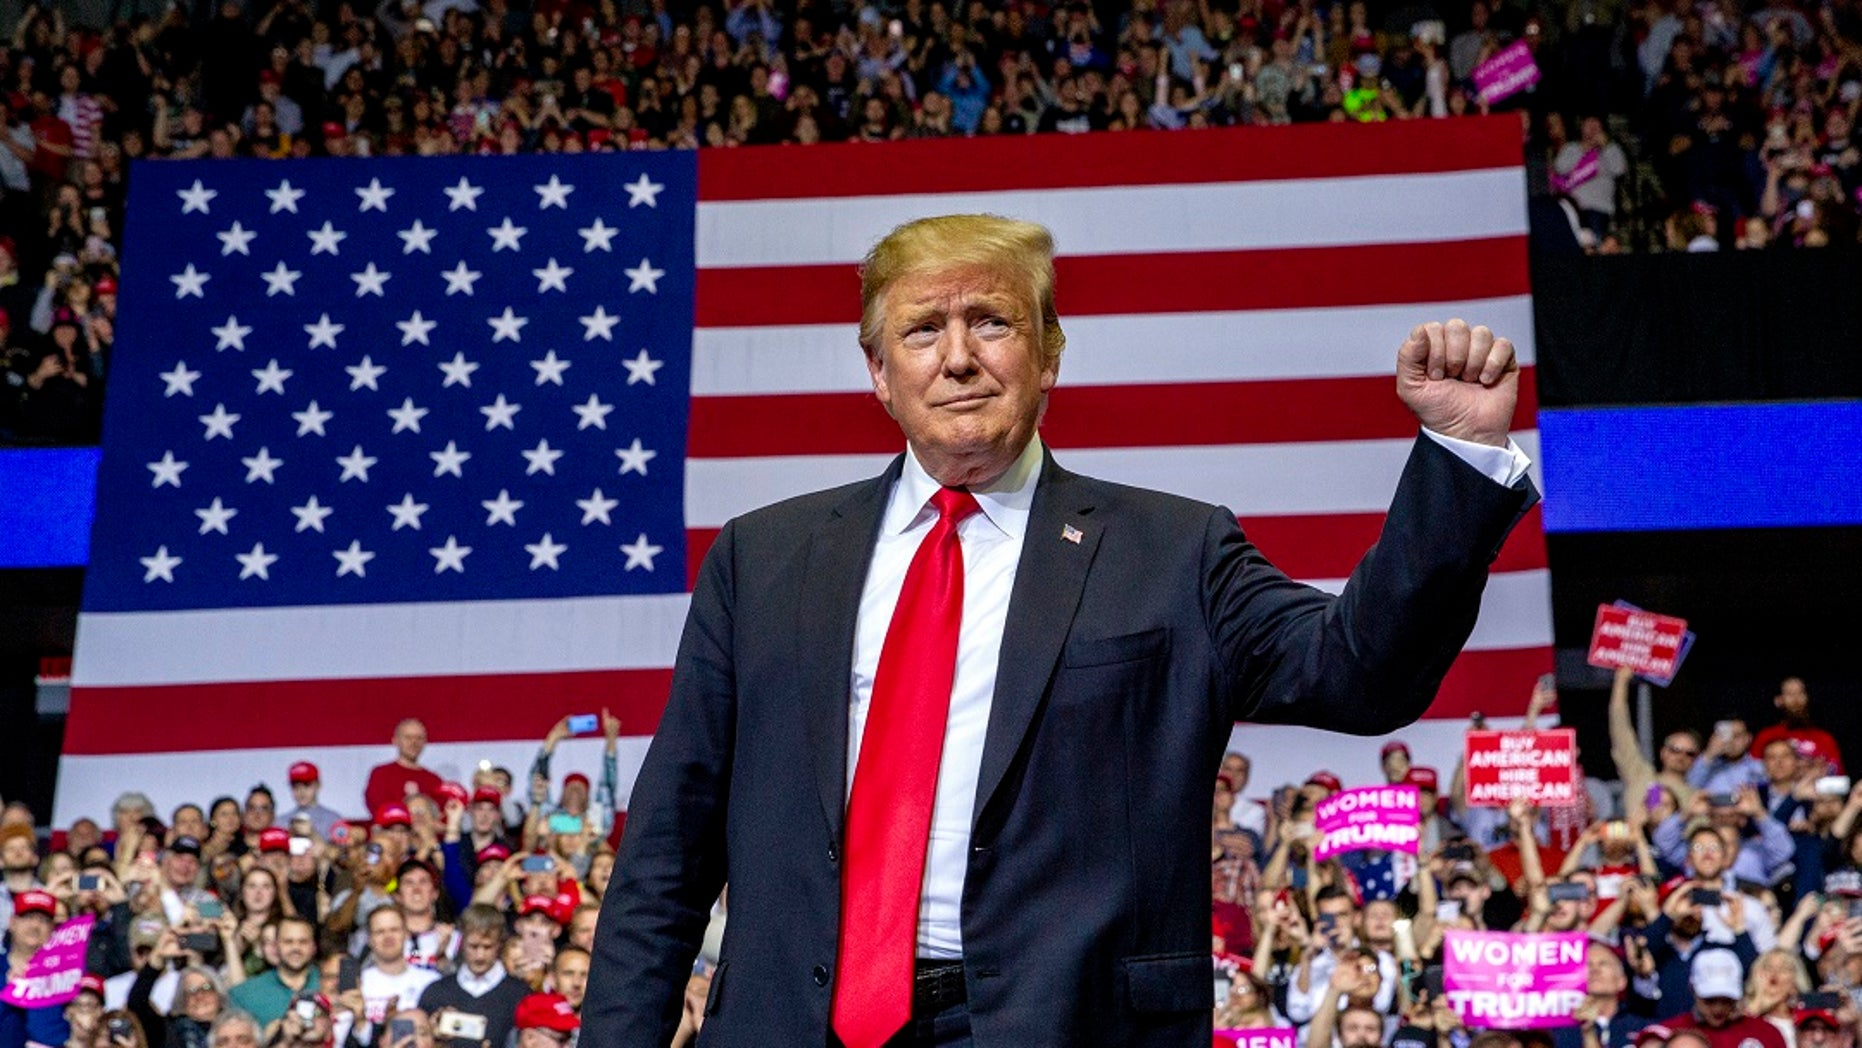 President Donald Trump gestures at a campaign rally at Van Andel Arena in Grand Rapids, Mich., on Thursday, March 28, 2019. (Associated Press)